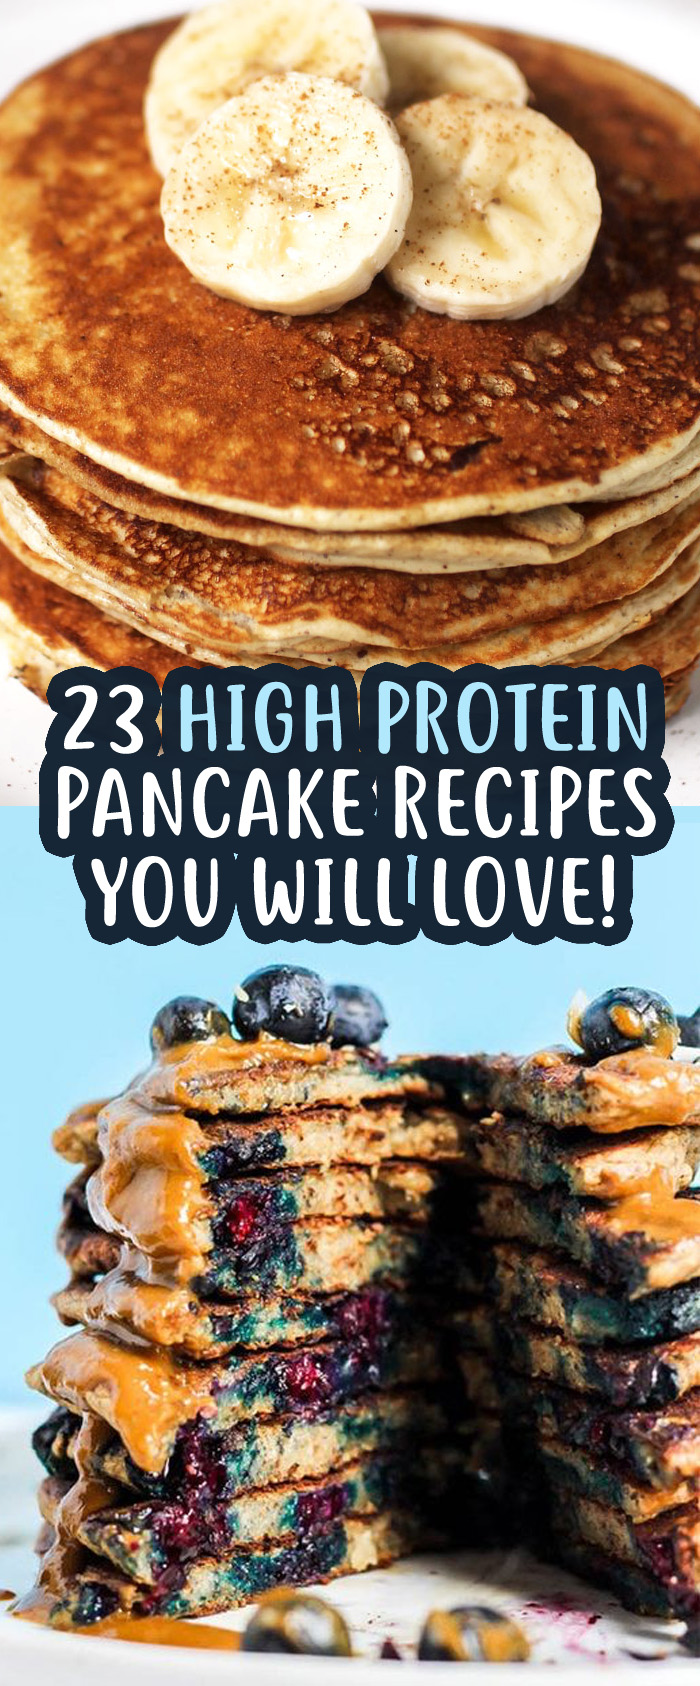 23 Super High Protein Pancake Recipes To Start Your Weight